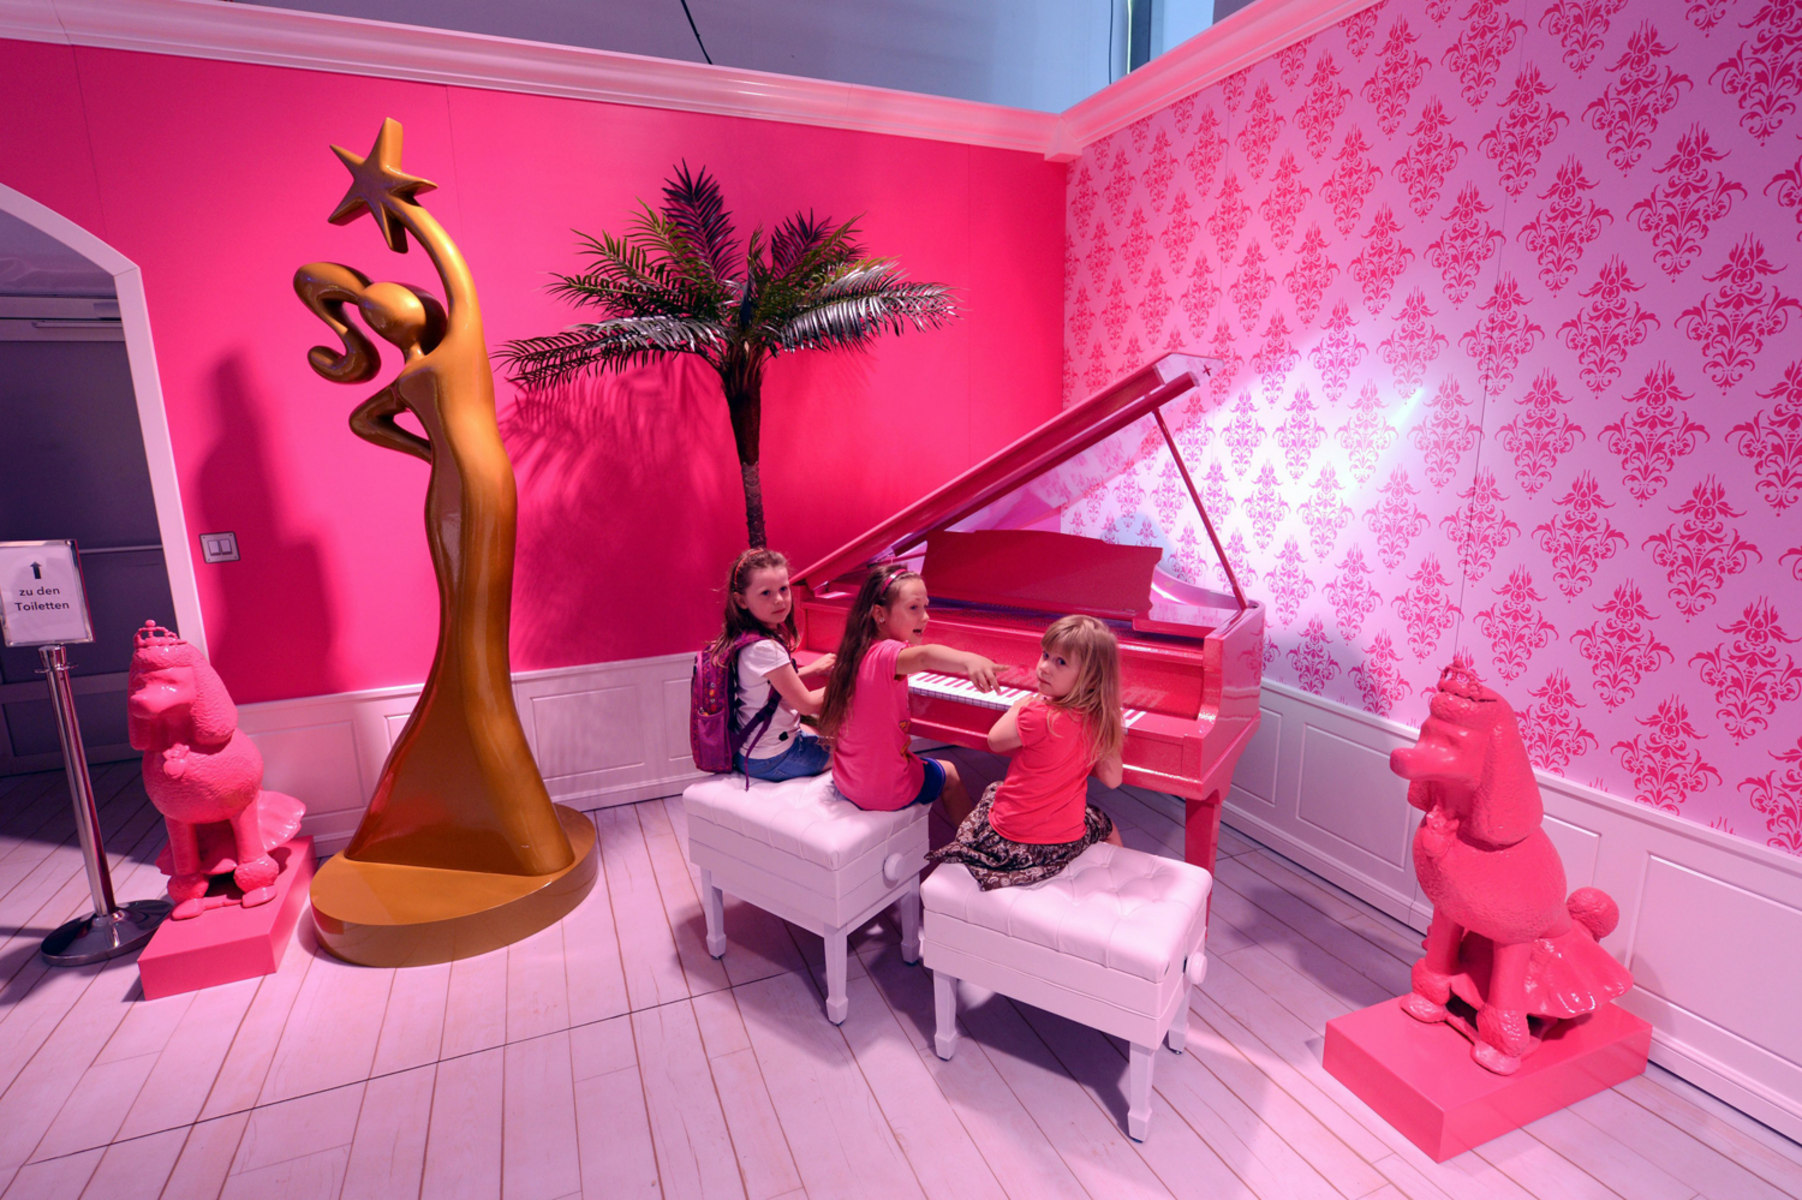 Image barbie dreamhouse opened in berlin